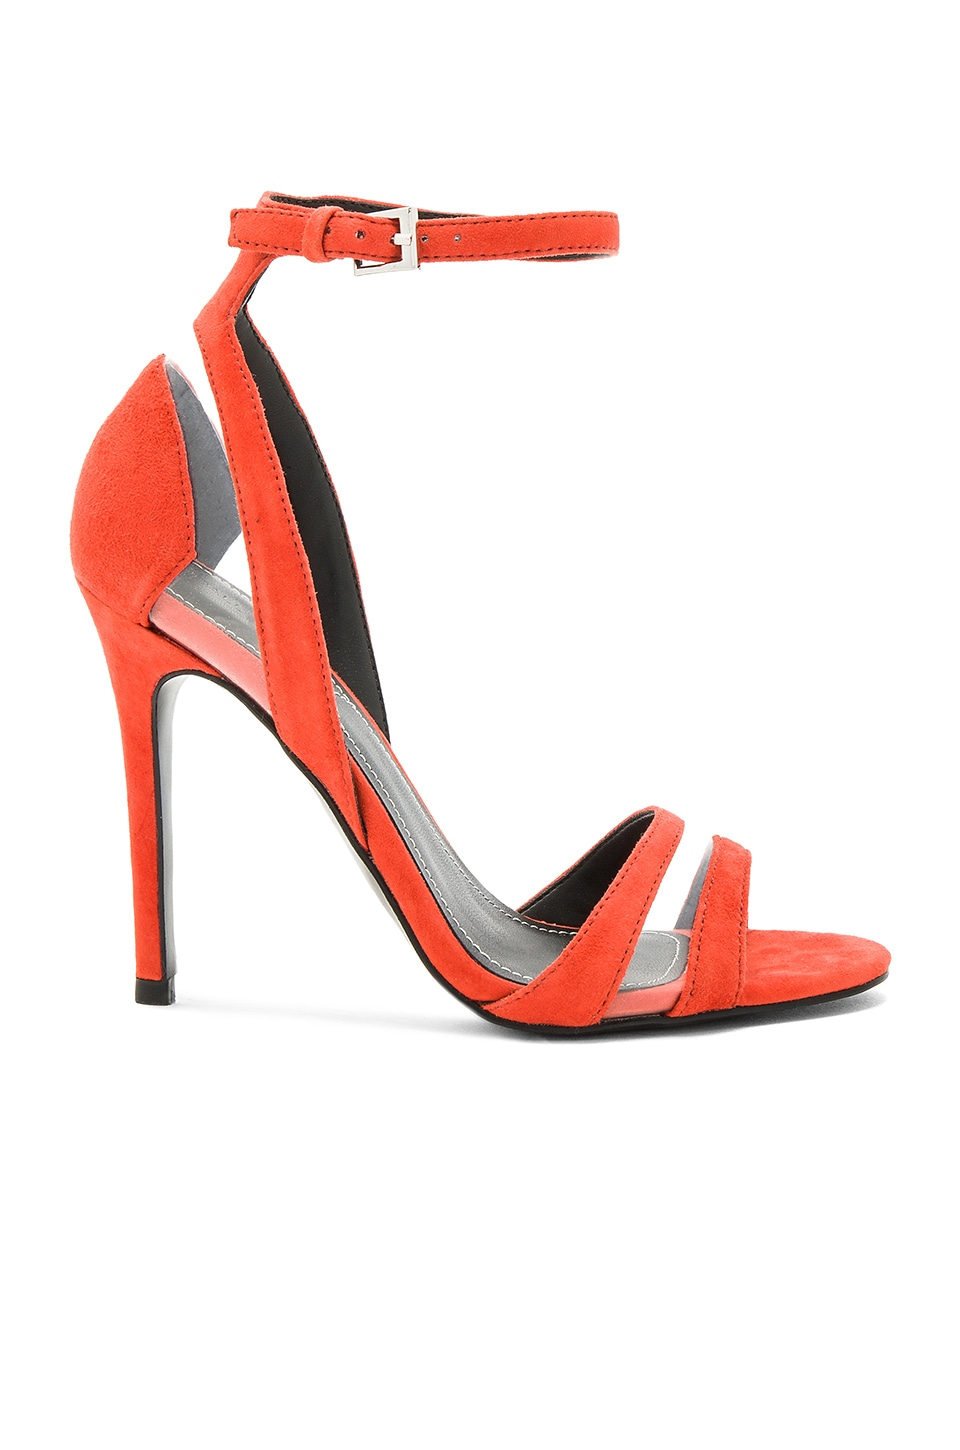 KENDALL + KYLIE Goldie Heel in Bright Coral